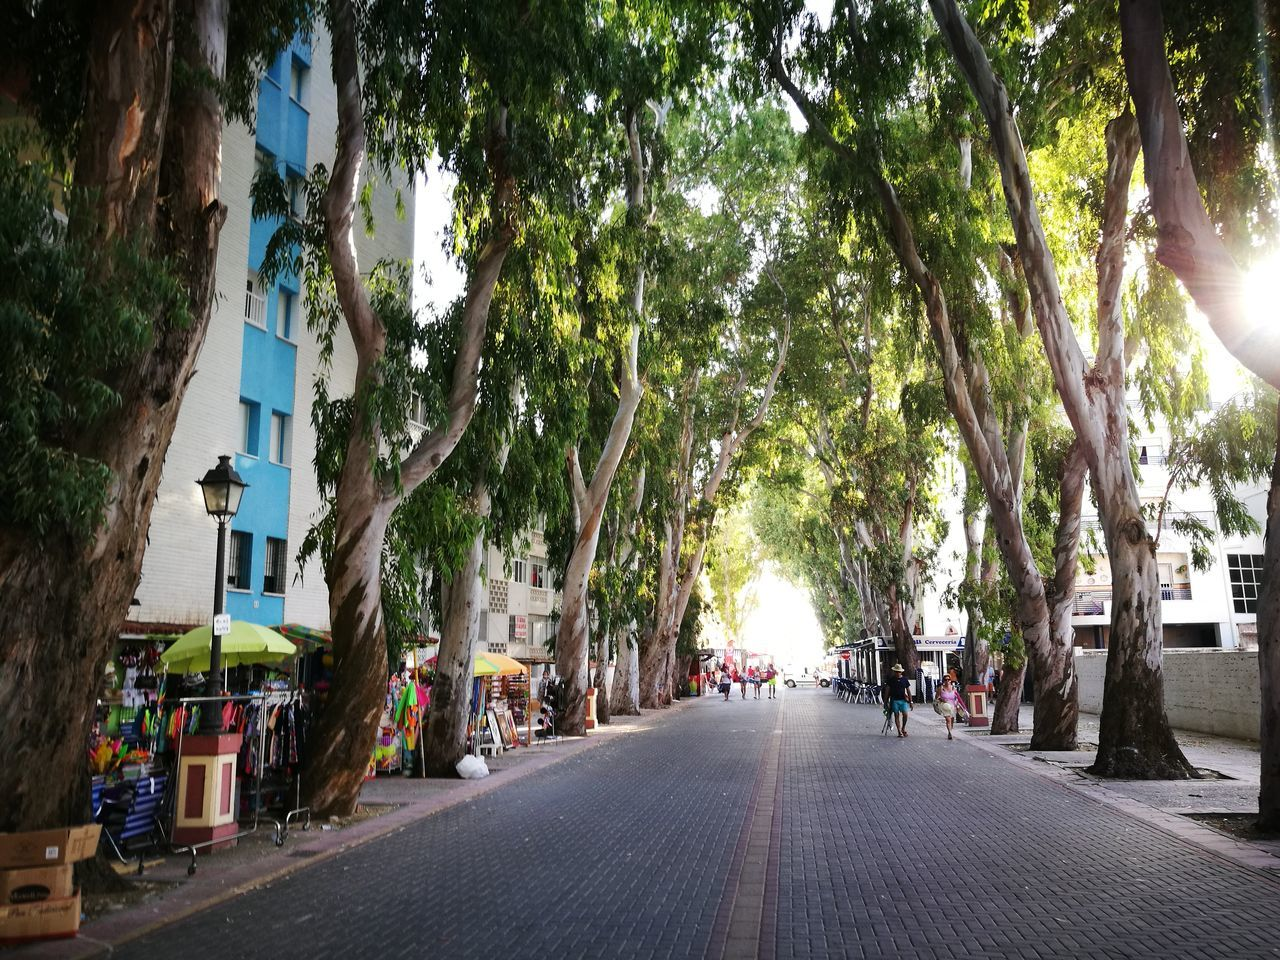 tree, street, the way forward, outdoors, day, road, city, nature, no people